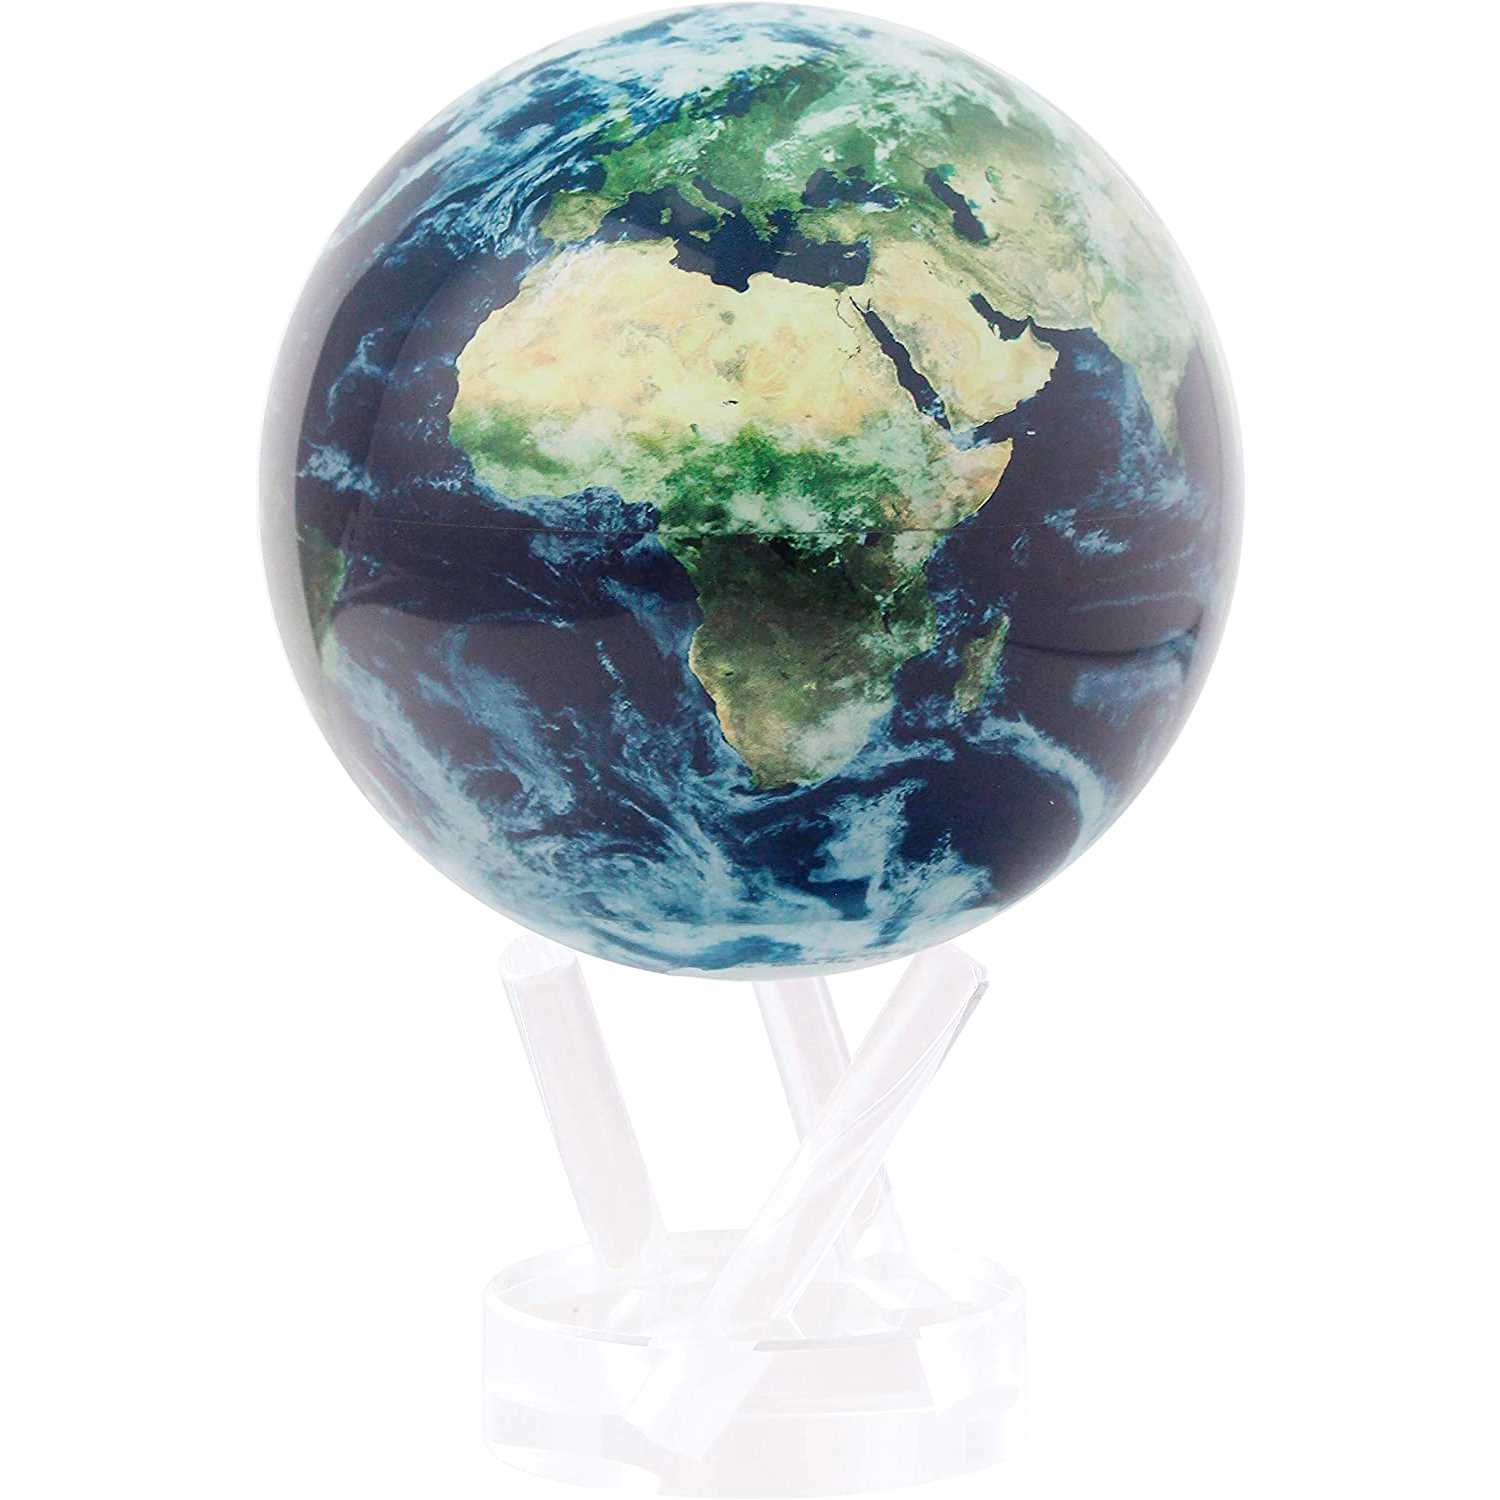 Solar Powered Rotating Earth with Clouds Globe Main Image - High End Christmas Gifts For Men